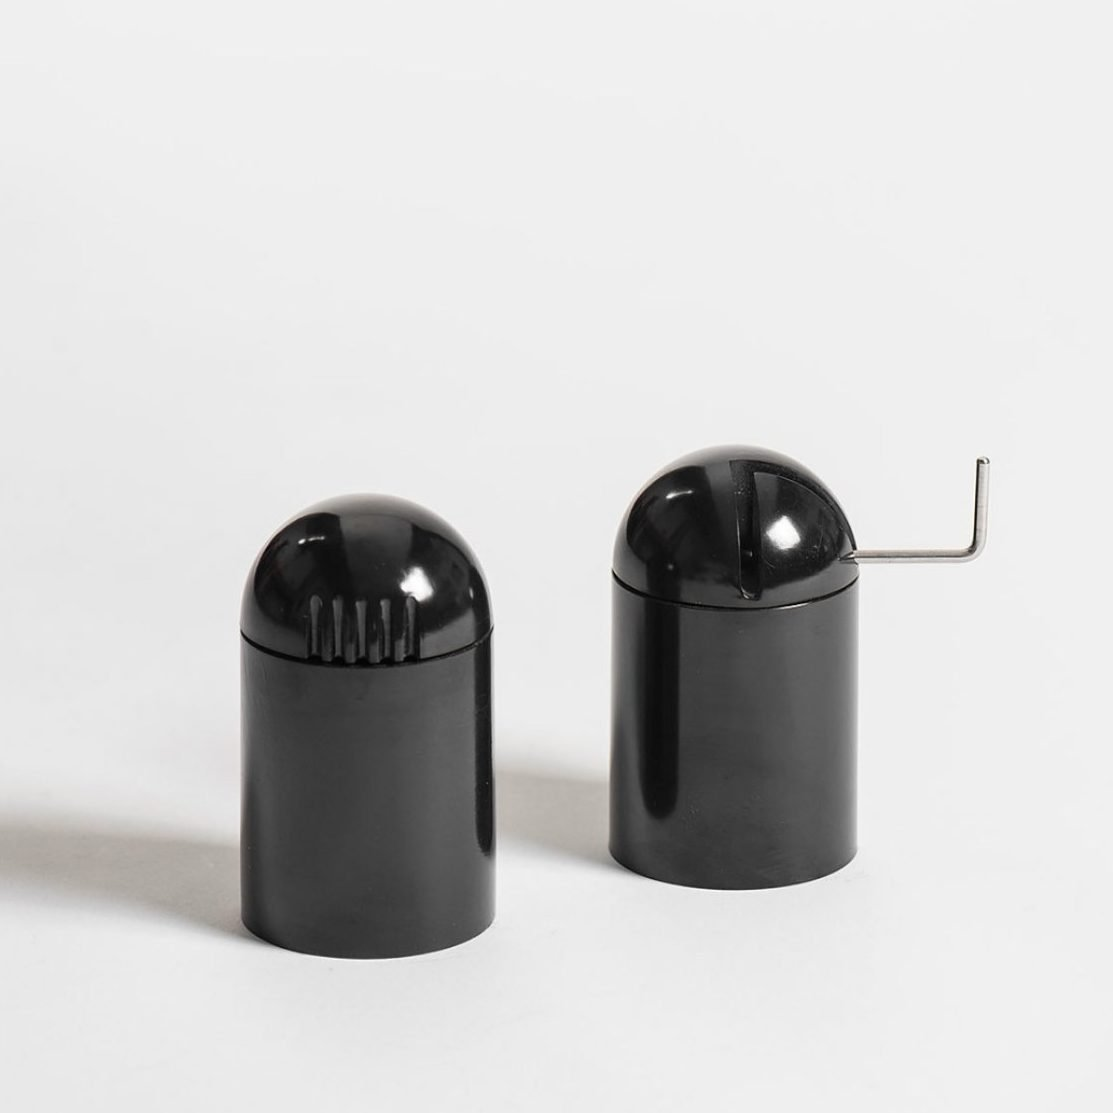 Salt shaker & Pepper grinder by Danese designed by Enzo Mari2